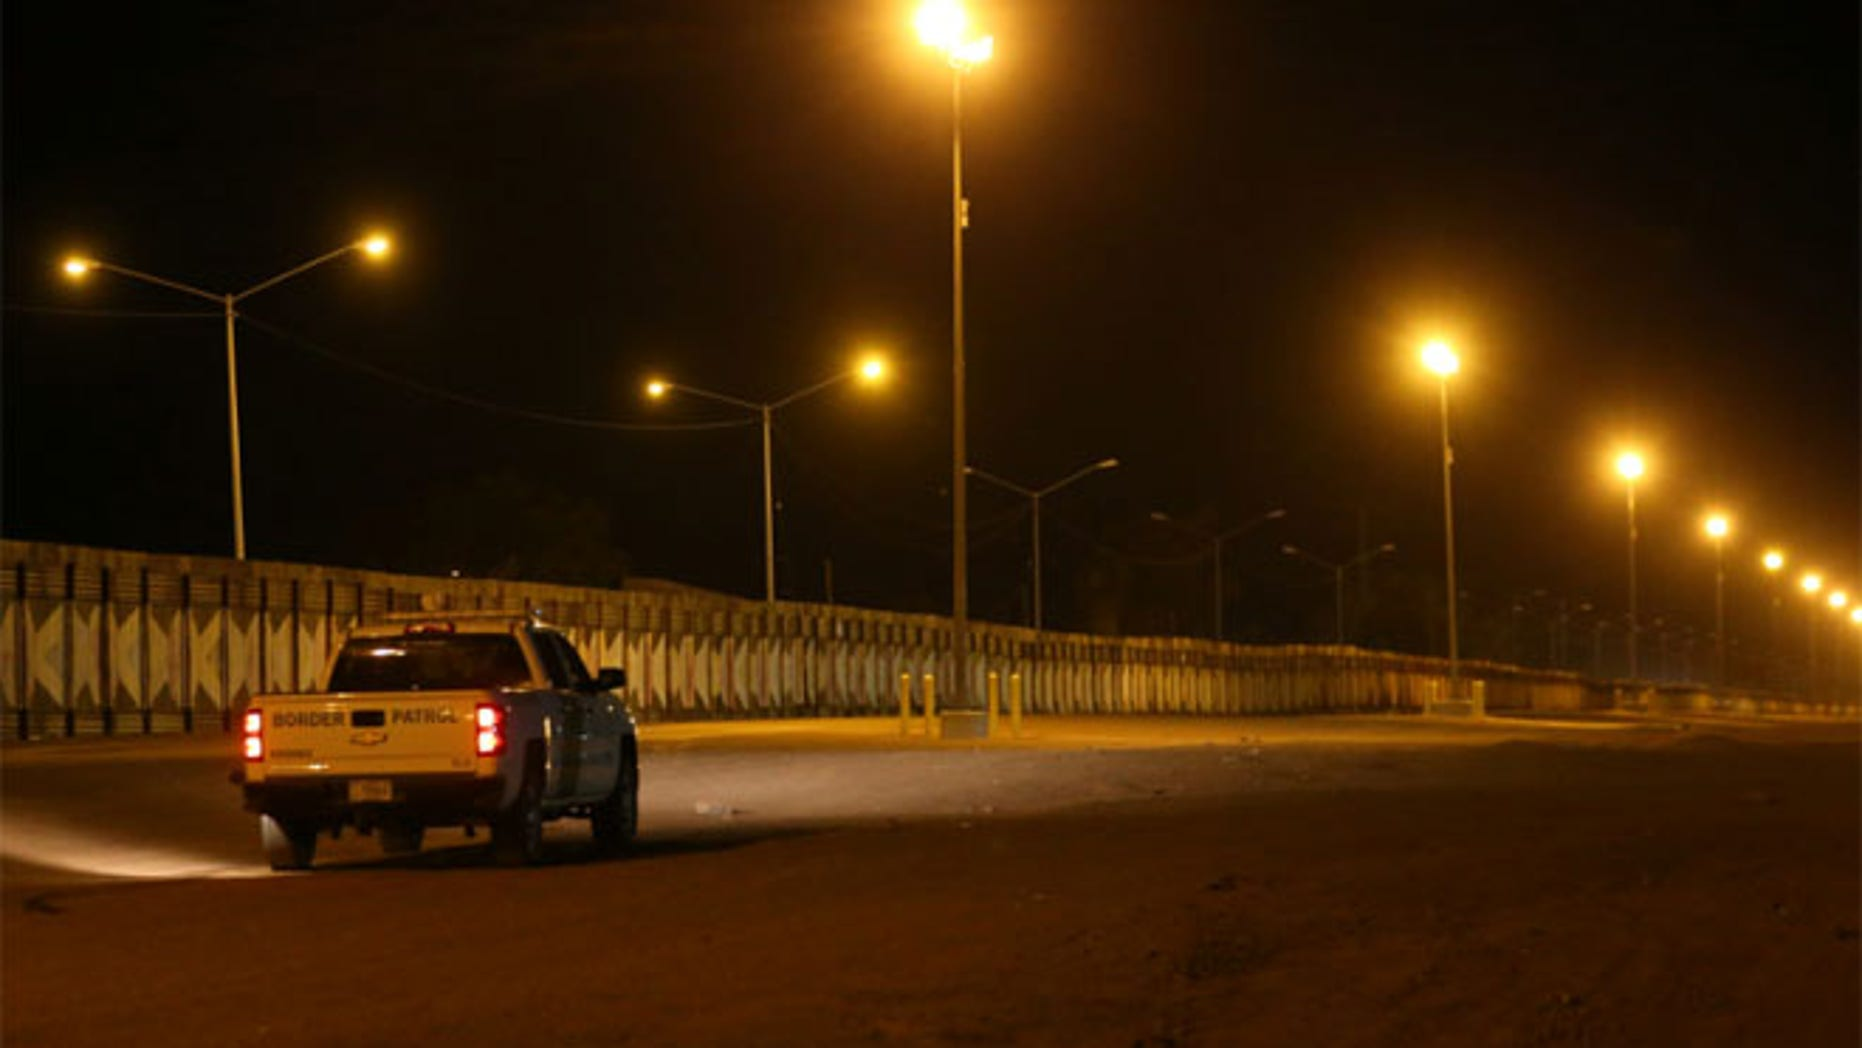 U.S. border patrol agents patrol at night along the border wall next to Mexico in Calexico, California